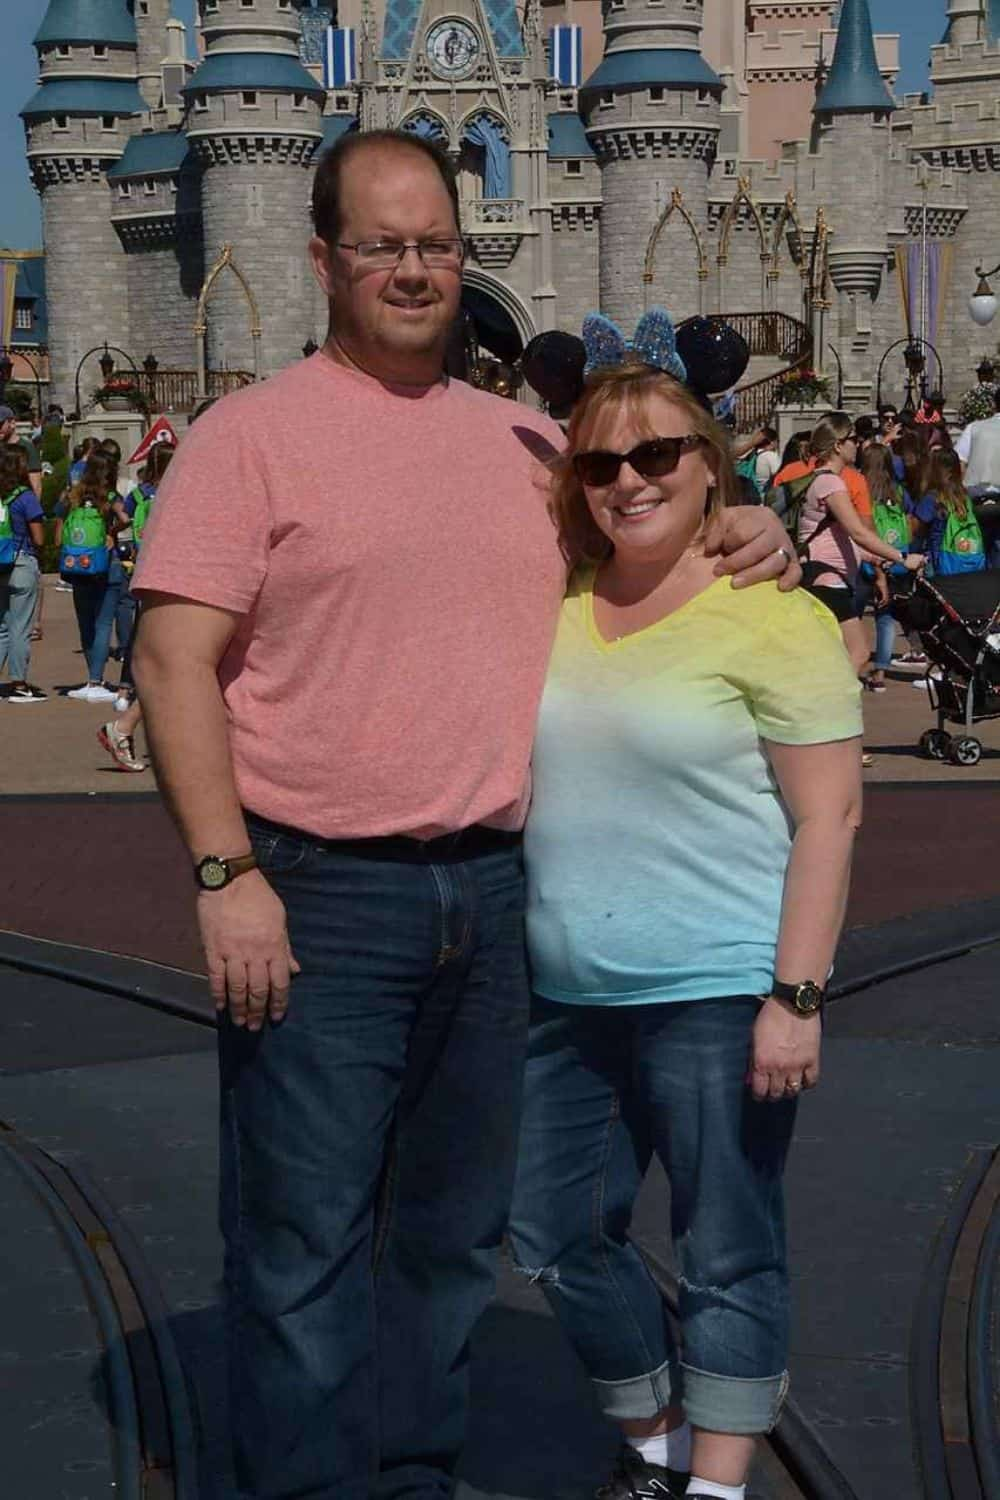 Disney World perfect Romantic Getaway for couples. it is so easy to get swept up in the magic. Disney World It's not just a family vacation destination, but a perfect place for couples to visit.